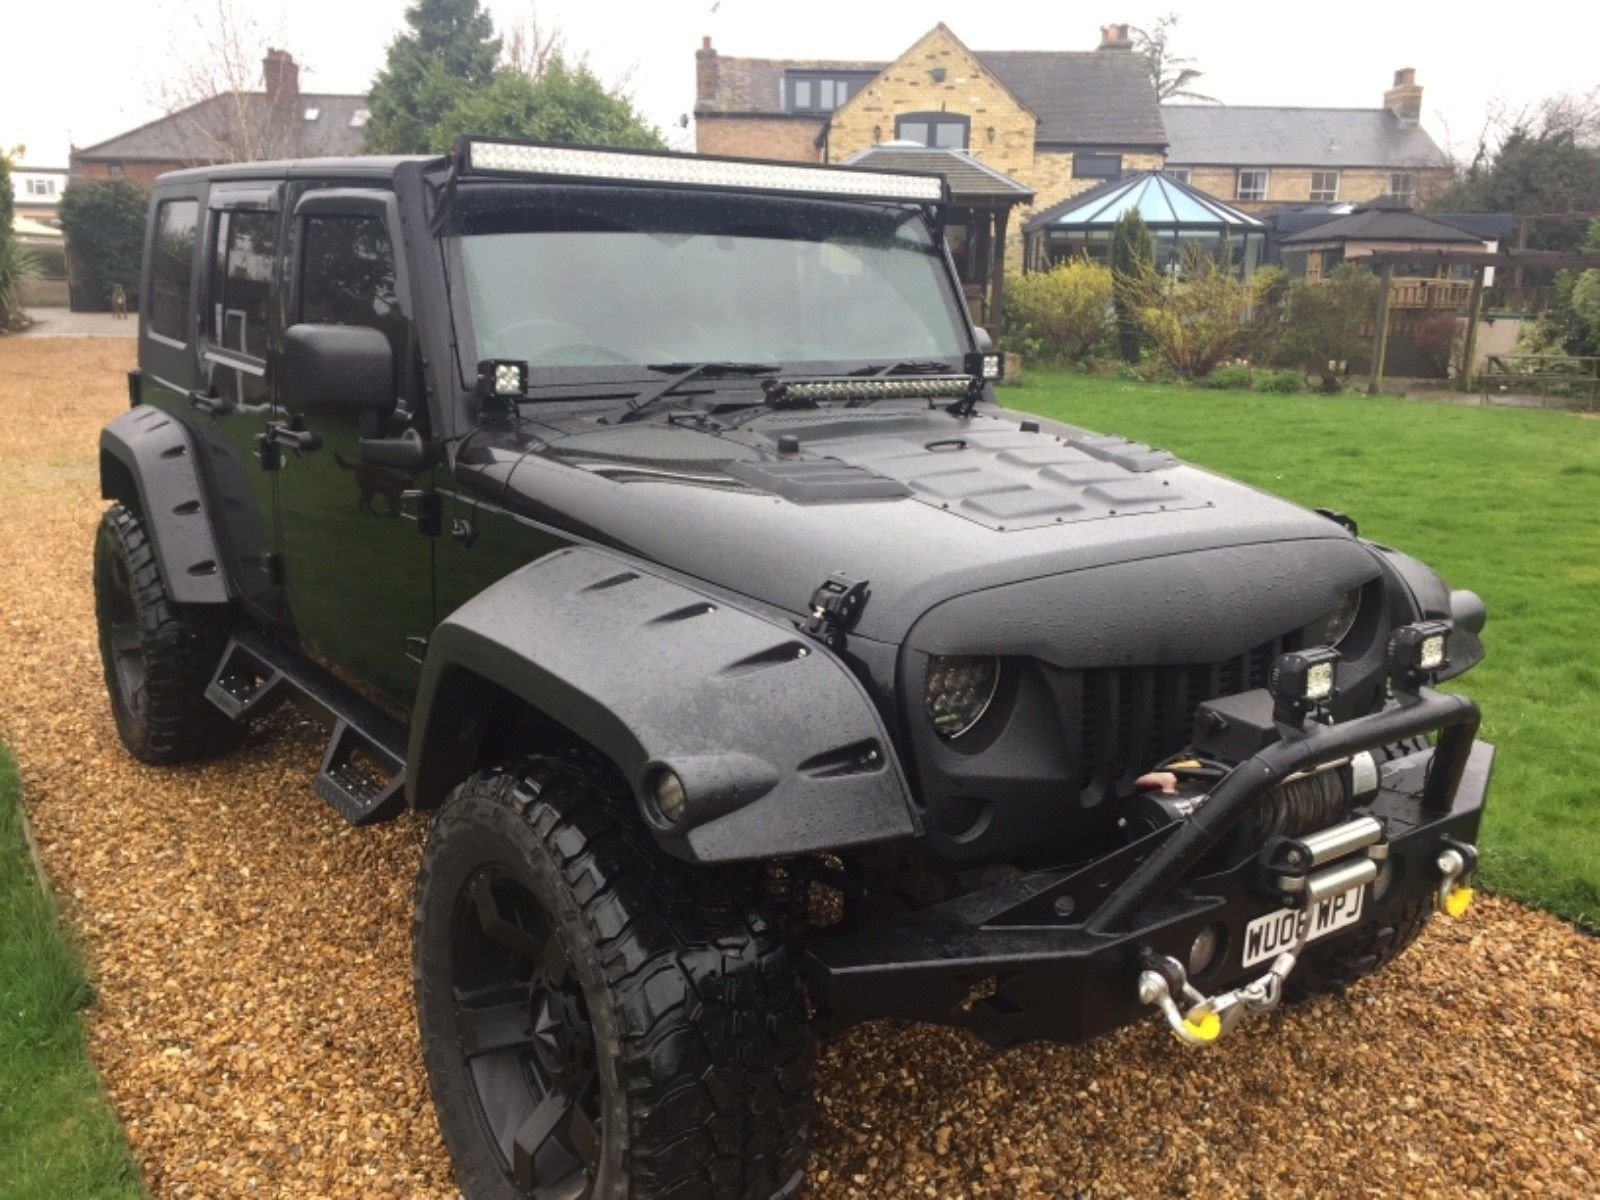 Ebay Wrangler Jeep Jk 2 8 Crd Sahara Unlimited Modified Off